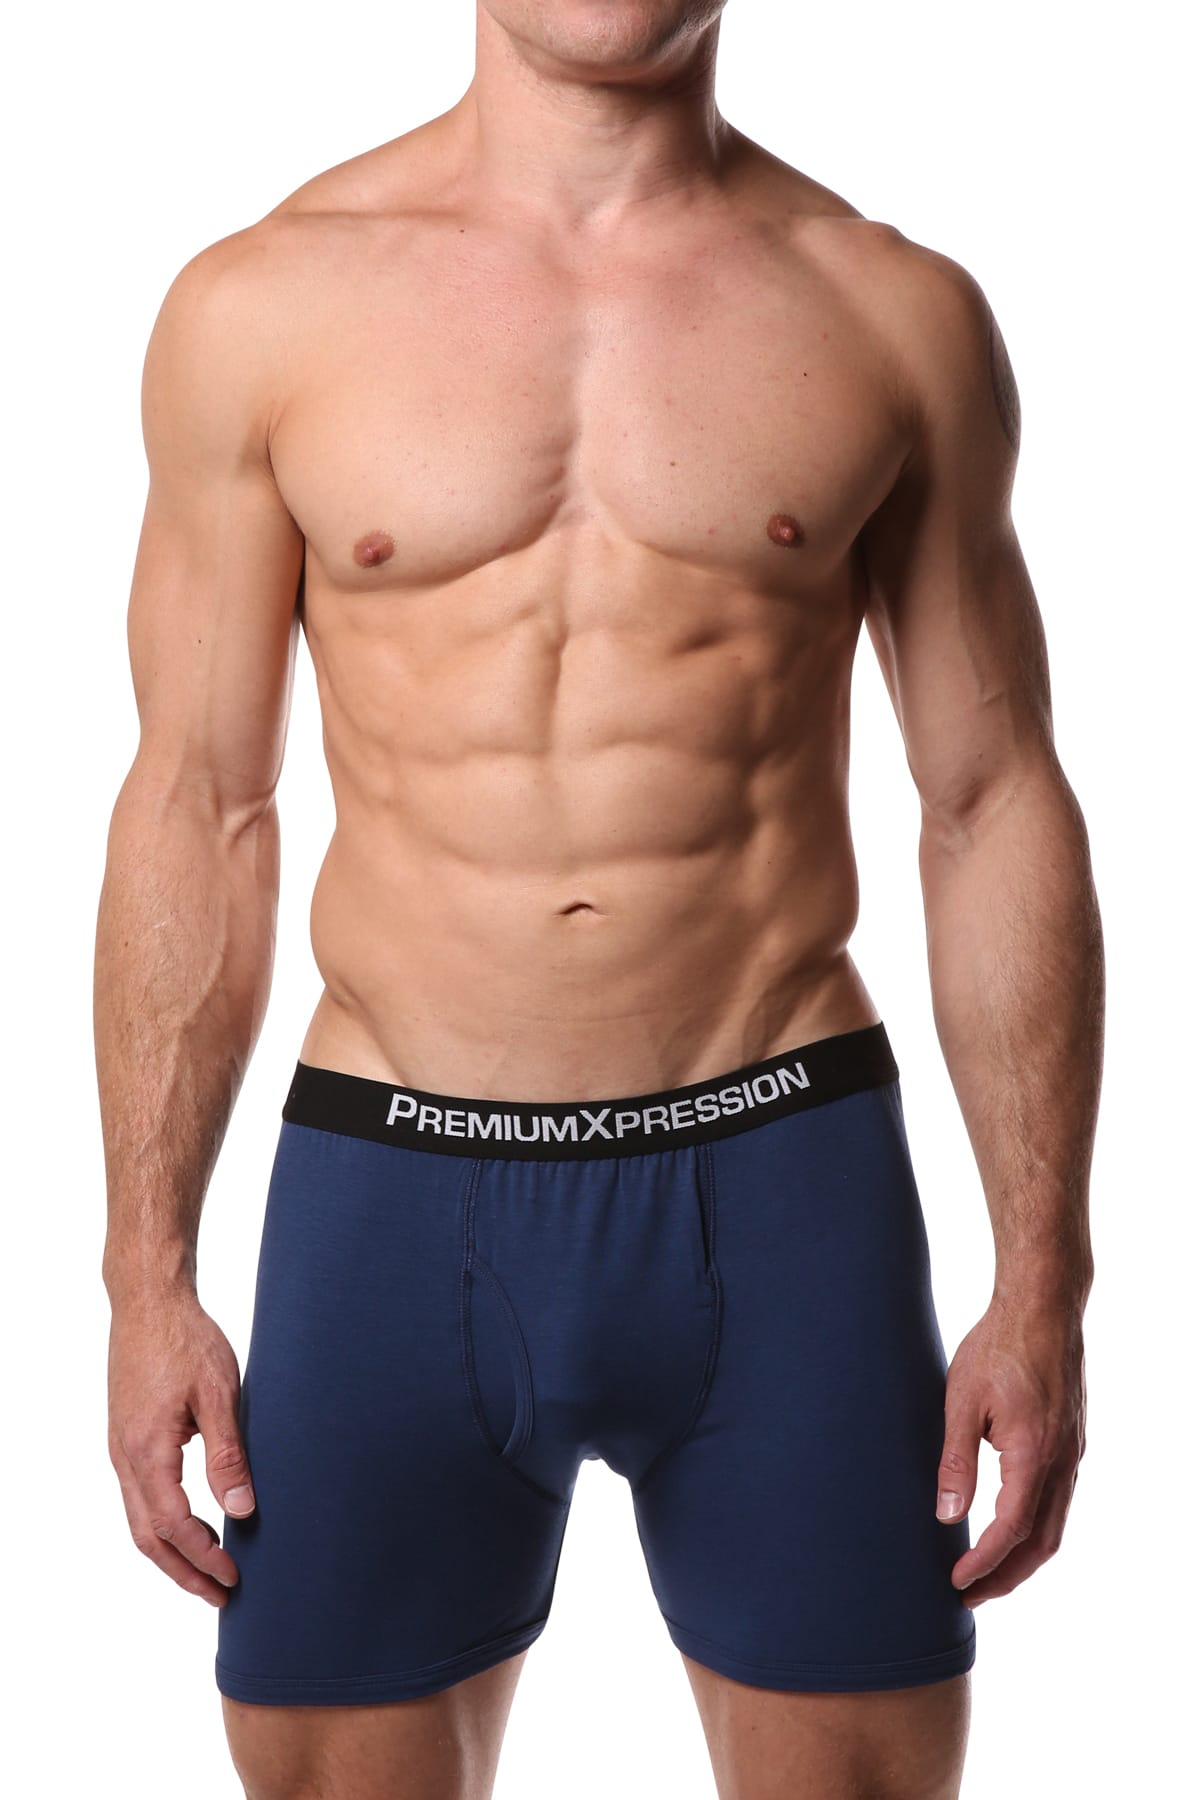 Premium Xpression Navy Boxer Brief